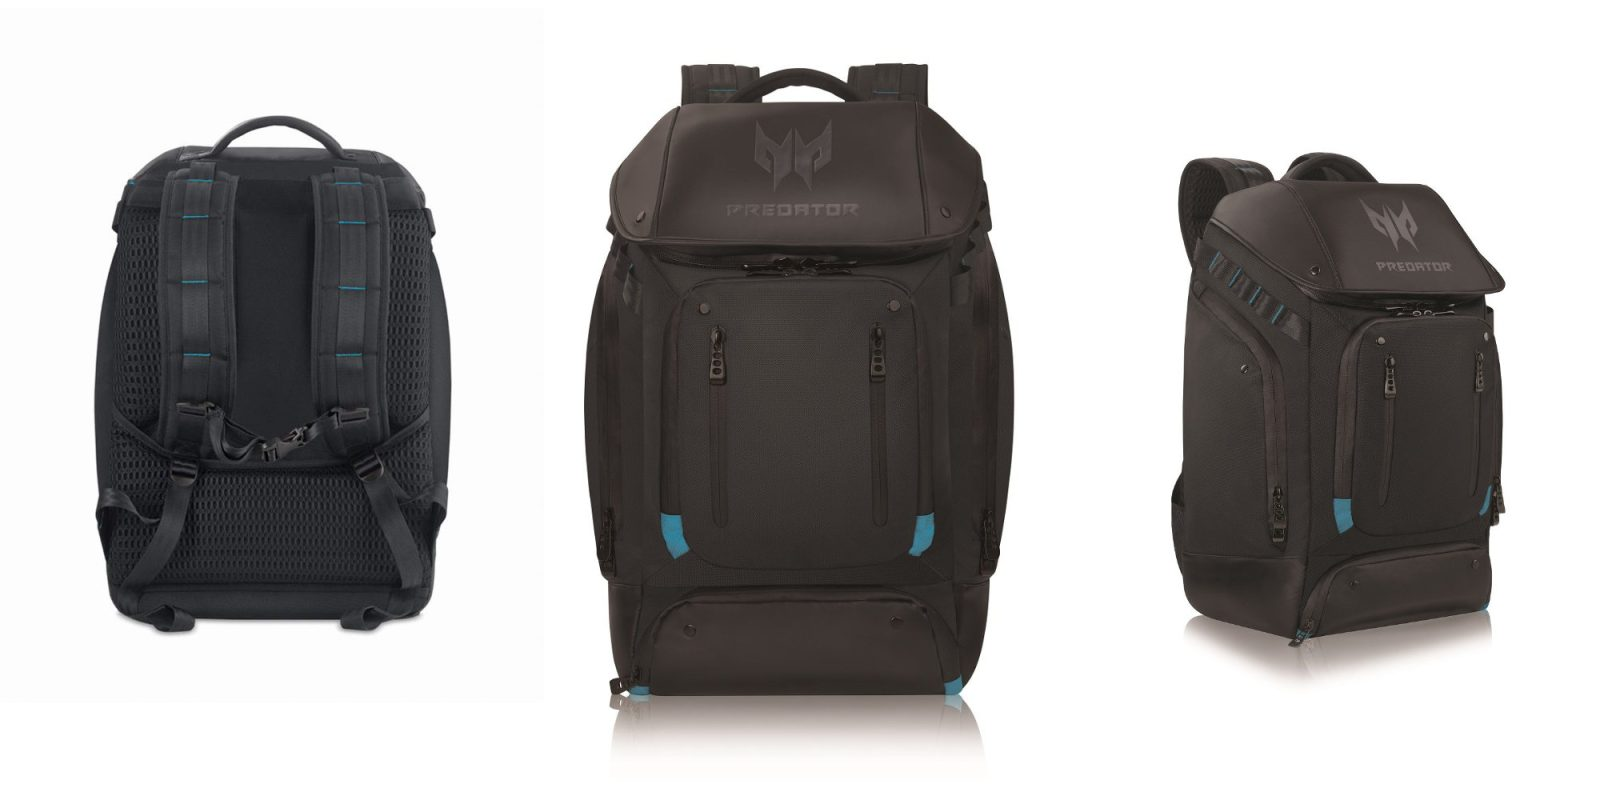 642b535bd78c9 Acer s Predator Utility Backpack sports slick styling and fits every  MacBook size   110 (Reg.  140)